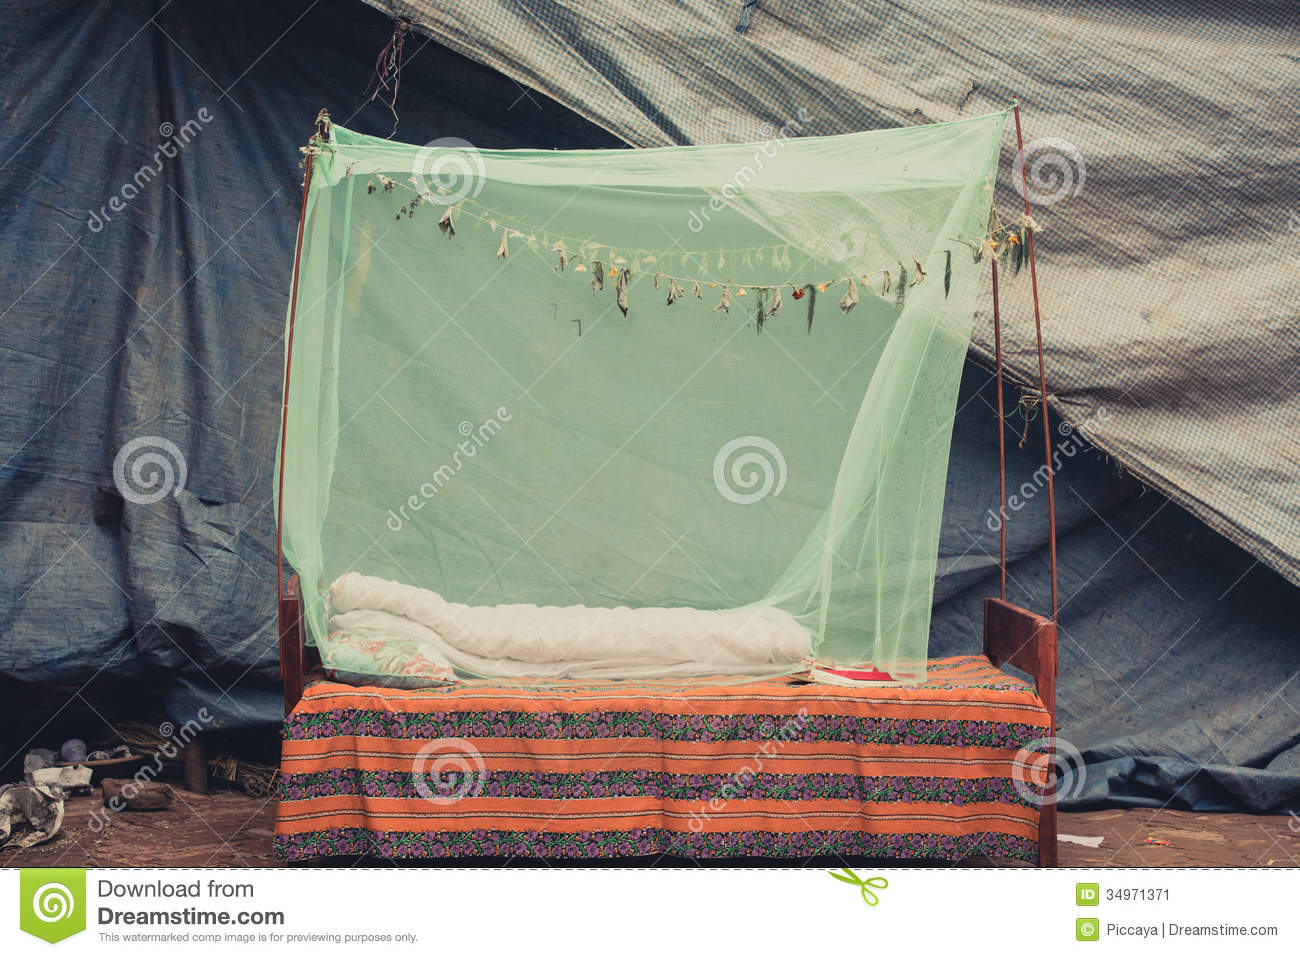 Outdoor Bed Room With Mosquito Net Stock Image Image